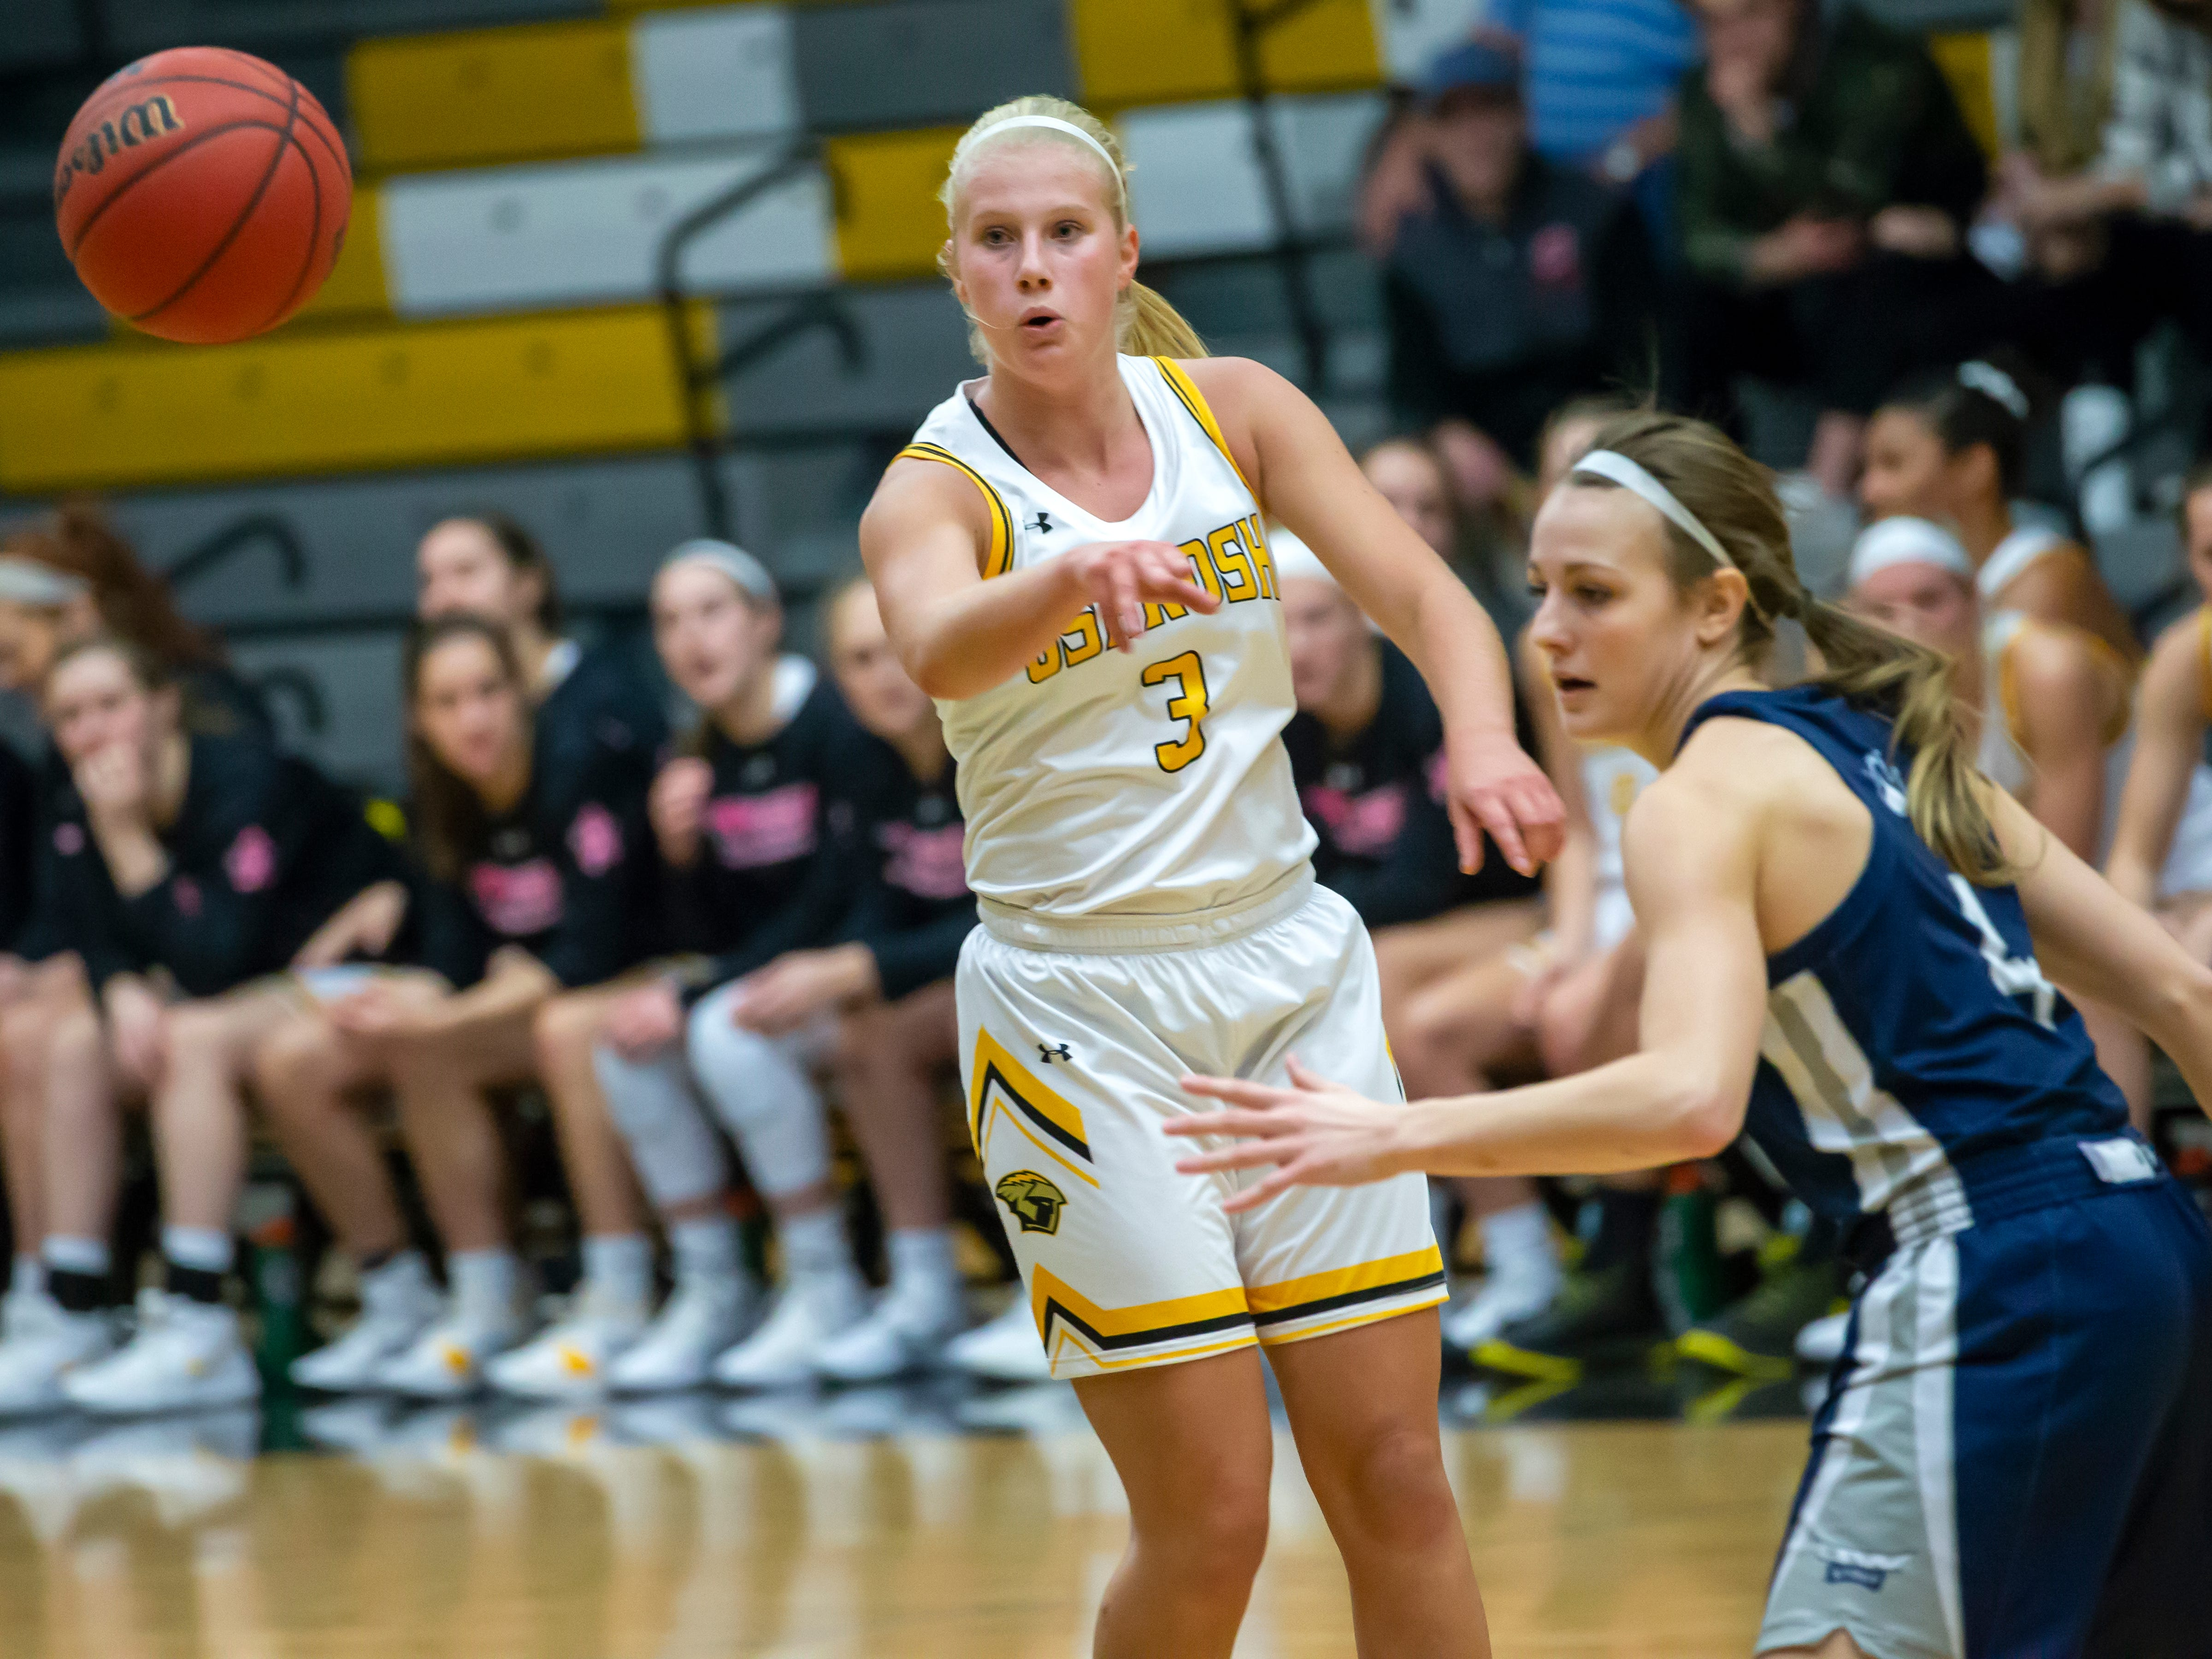 UW-Oshkosh's Brooke Freitag throws a pass during a game against UW-Stout at the Kolf Sports Center on Saturday, January 5, 2019.